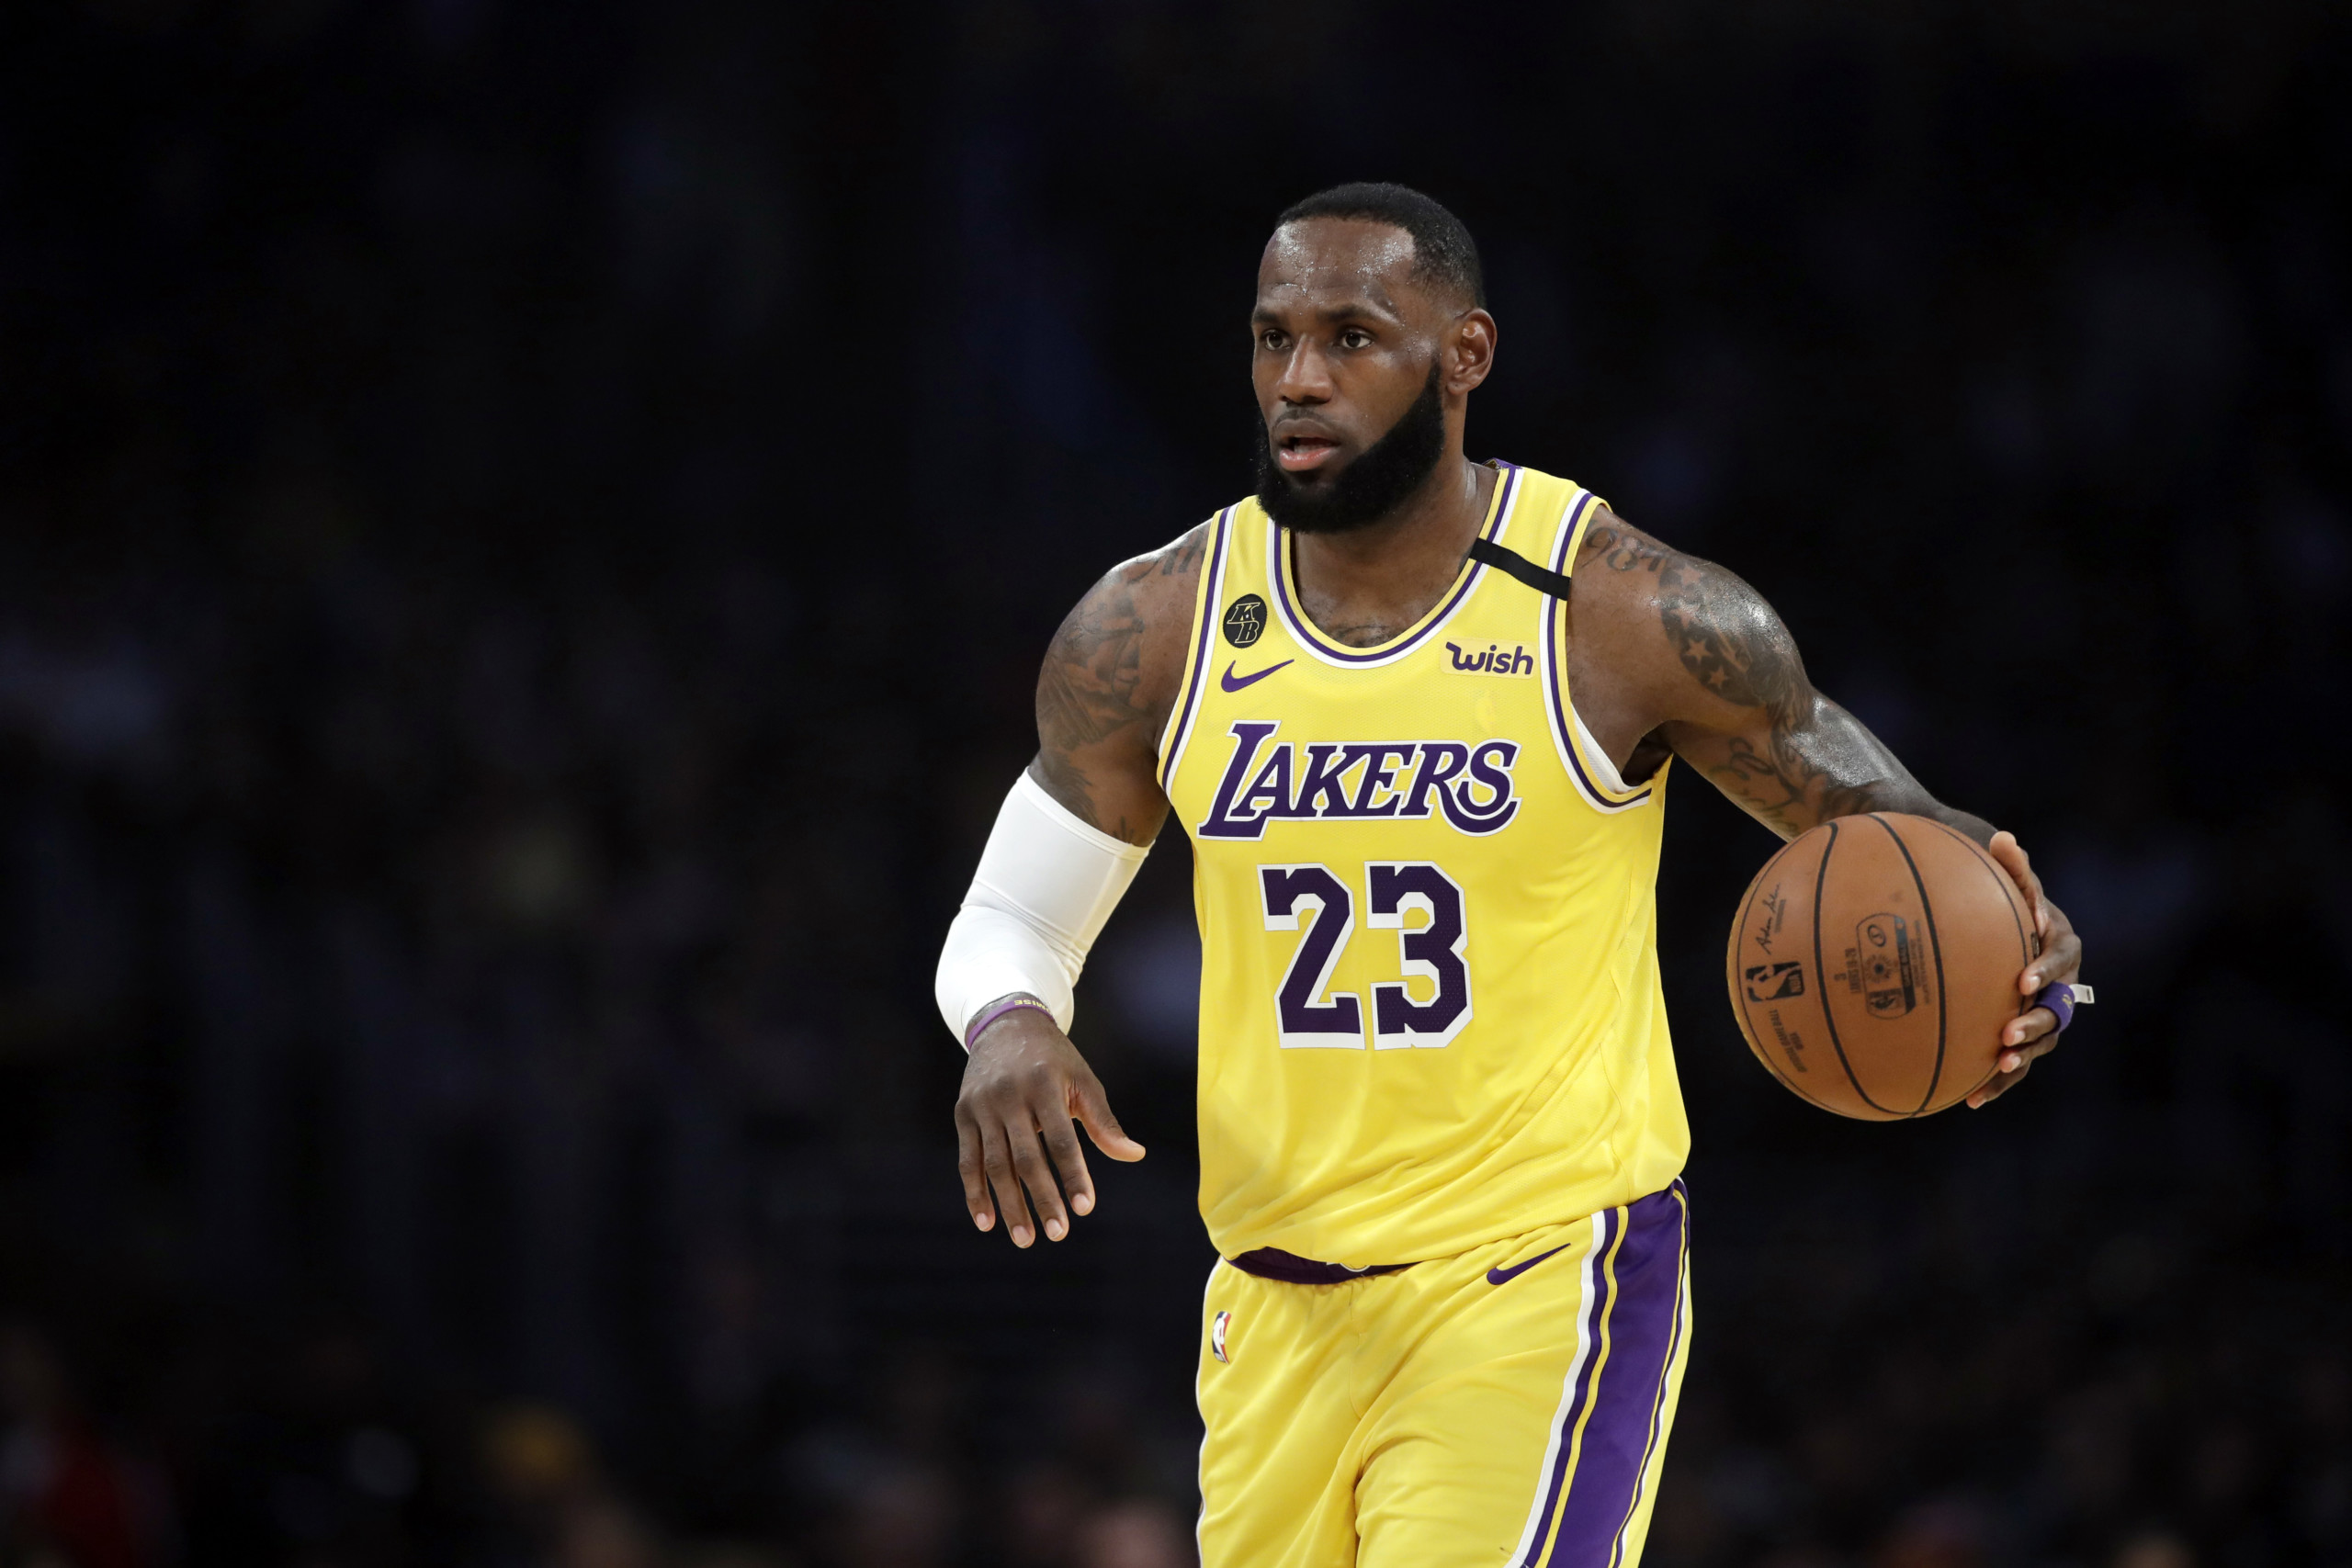 LeBron won't wear social justice message on Lakers jersey - WISH ...